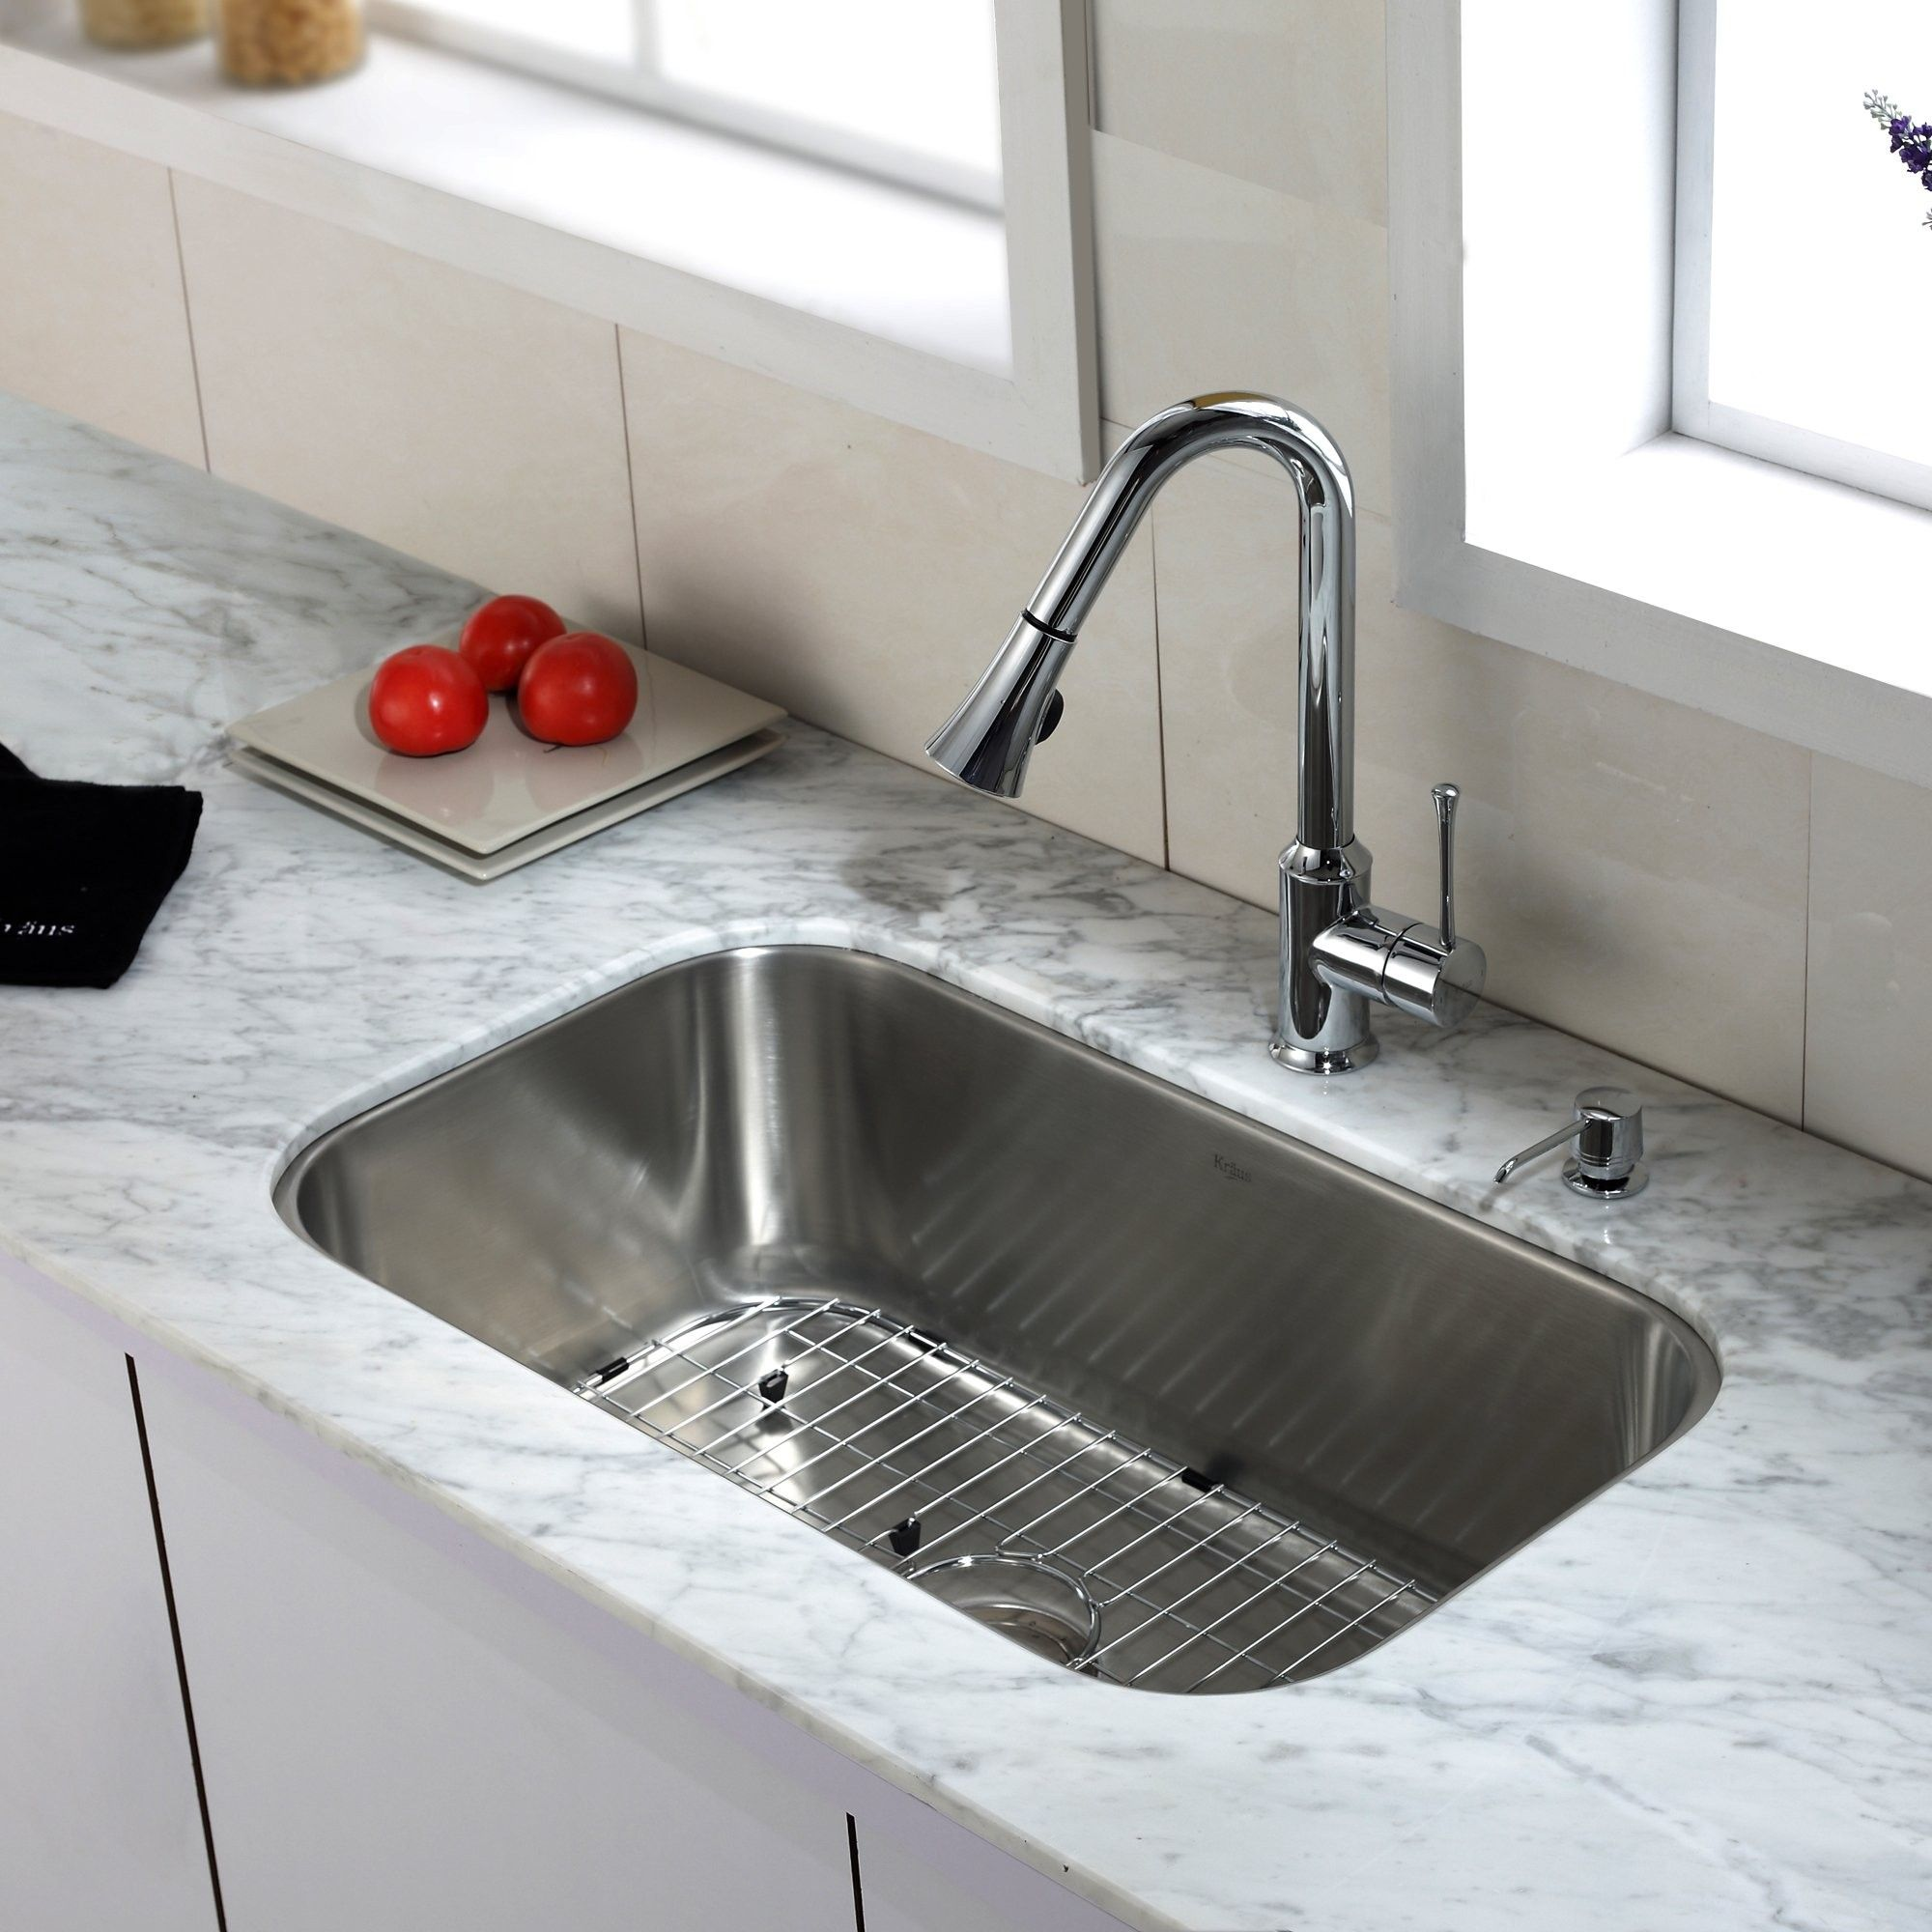 Pin by The Plumbing and Gas Guys on Blocked Kitchen Sink Repair ...